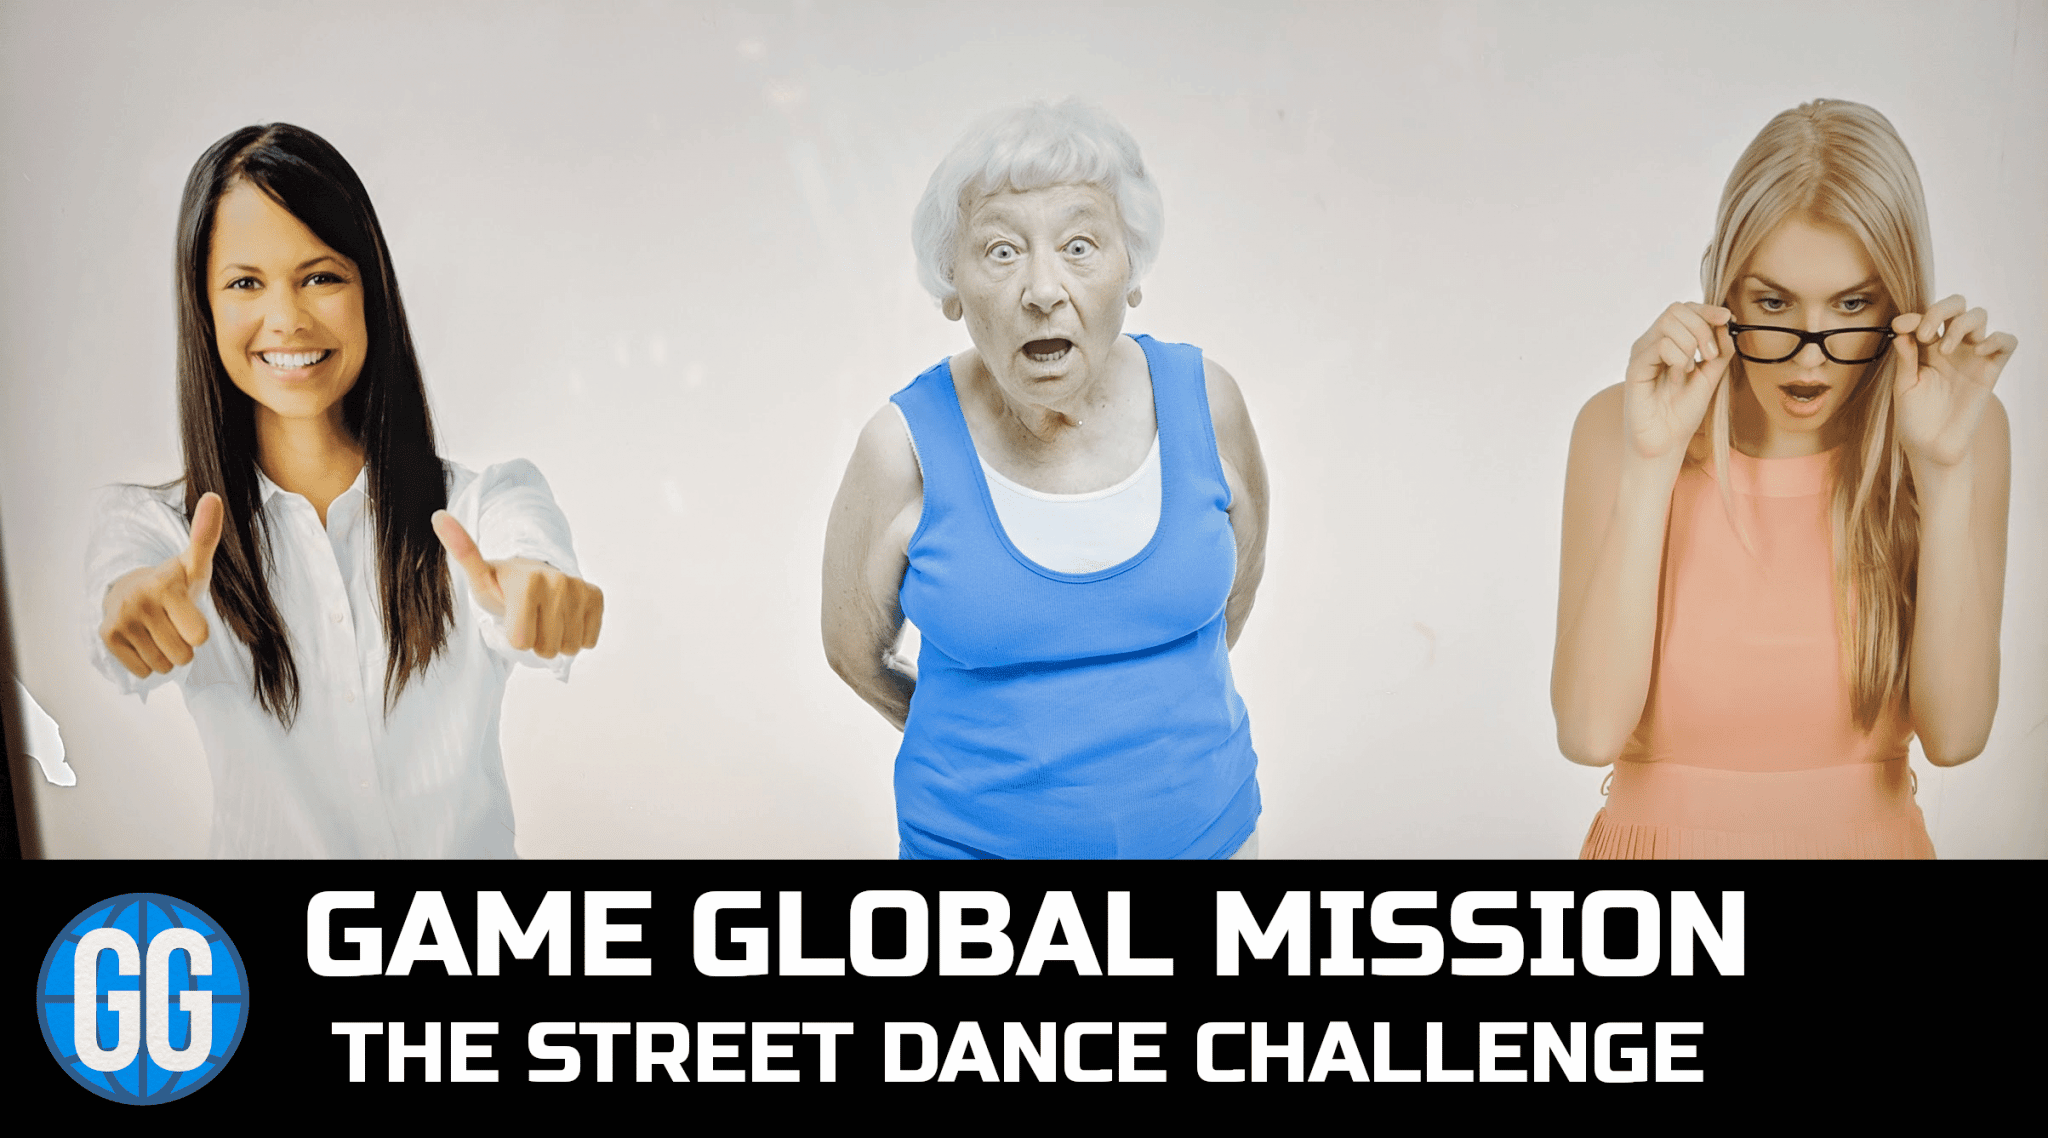 Mission 1: The Street Dance Challenge